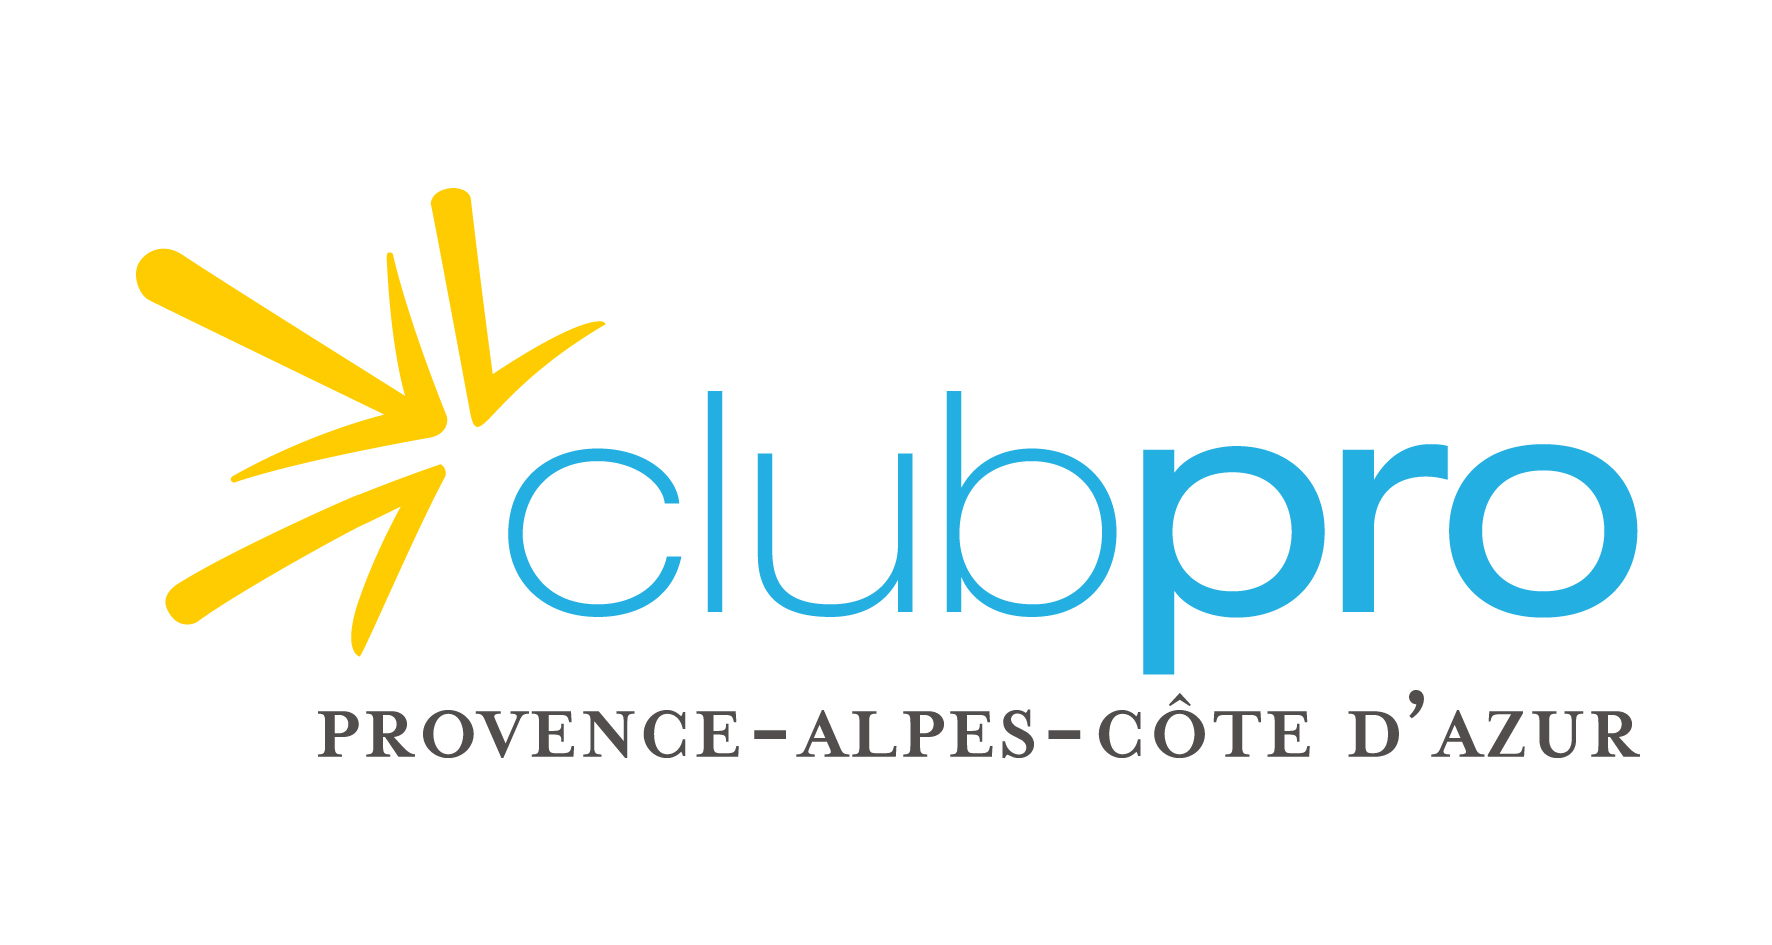 Member of the Provence Alpes Côte d'Azur Club Pro, bringing you the best in regional excellence in tourism